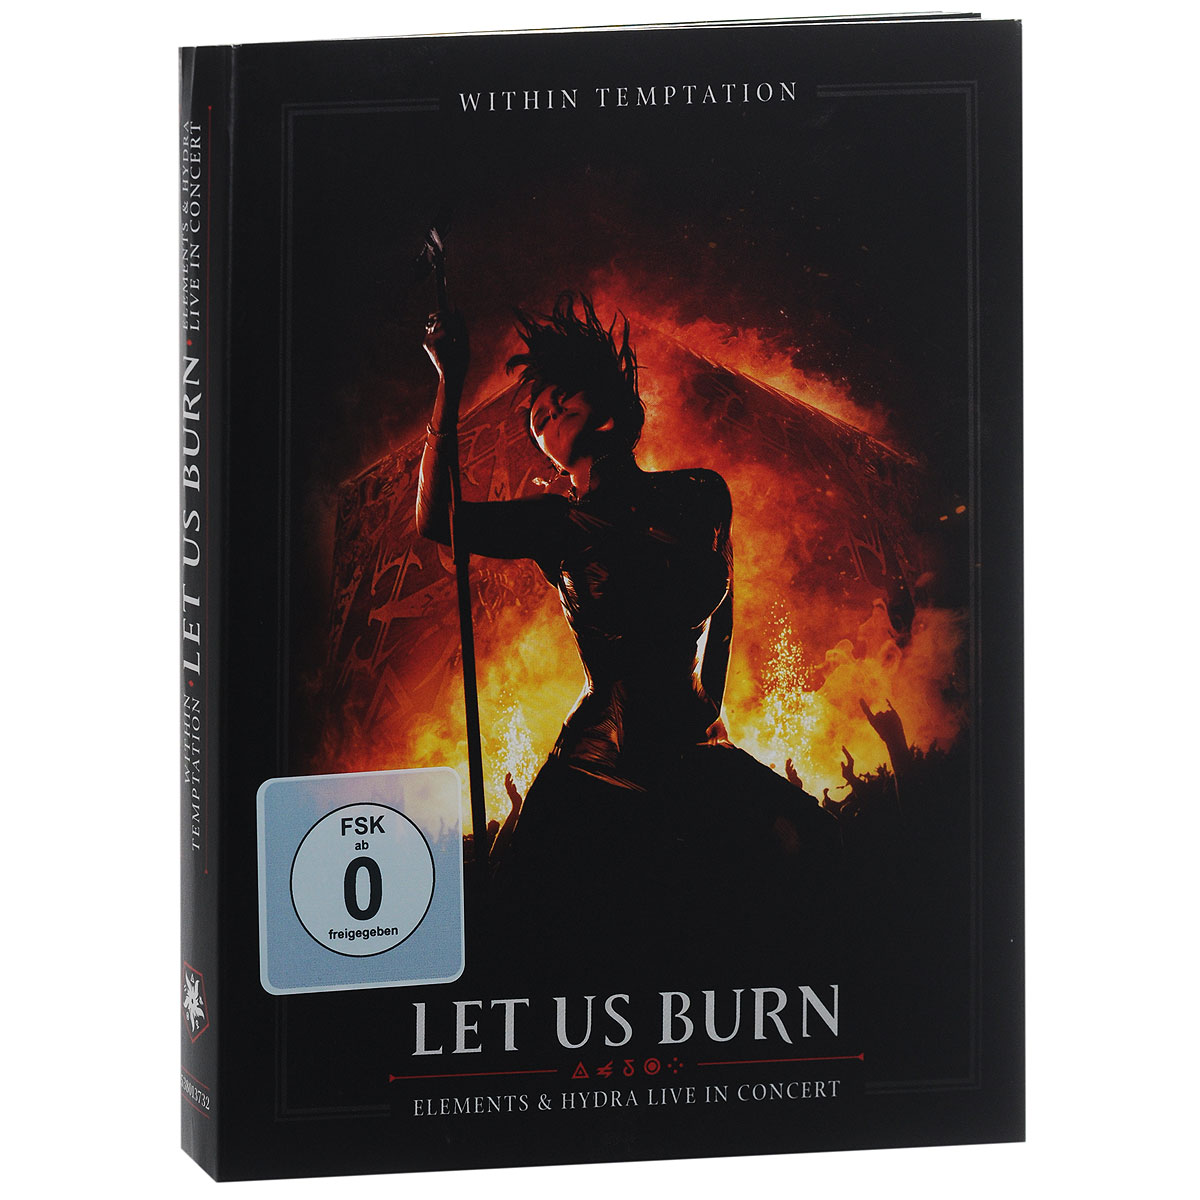 Within Temptation Within Temptation. Let Us Burn (Elements & Hydra Live In Concert) (2 CD + DVD) yes yes in the present live from lyon 2 cd dvd